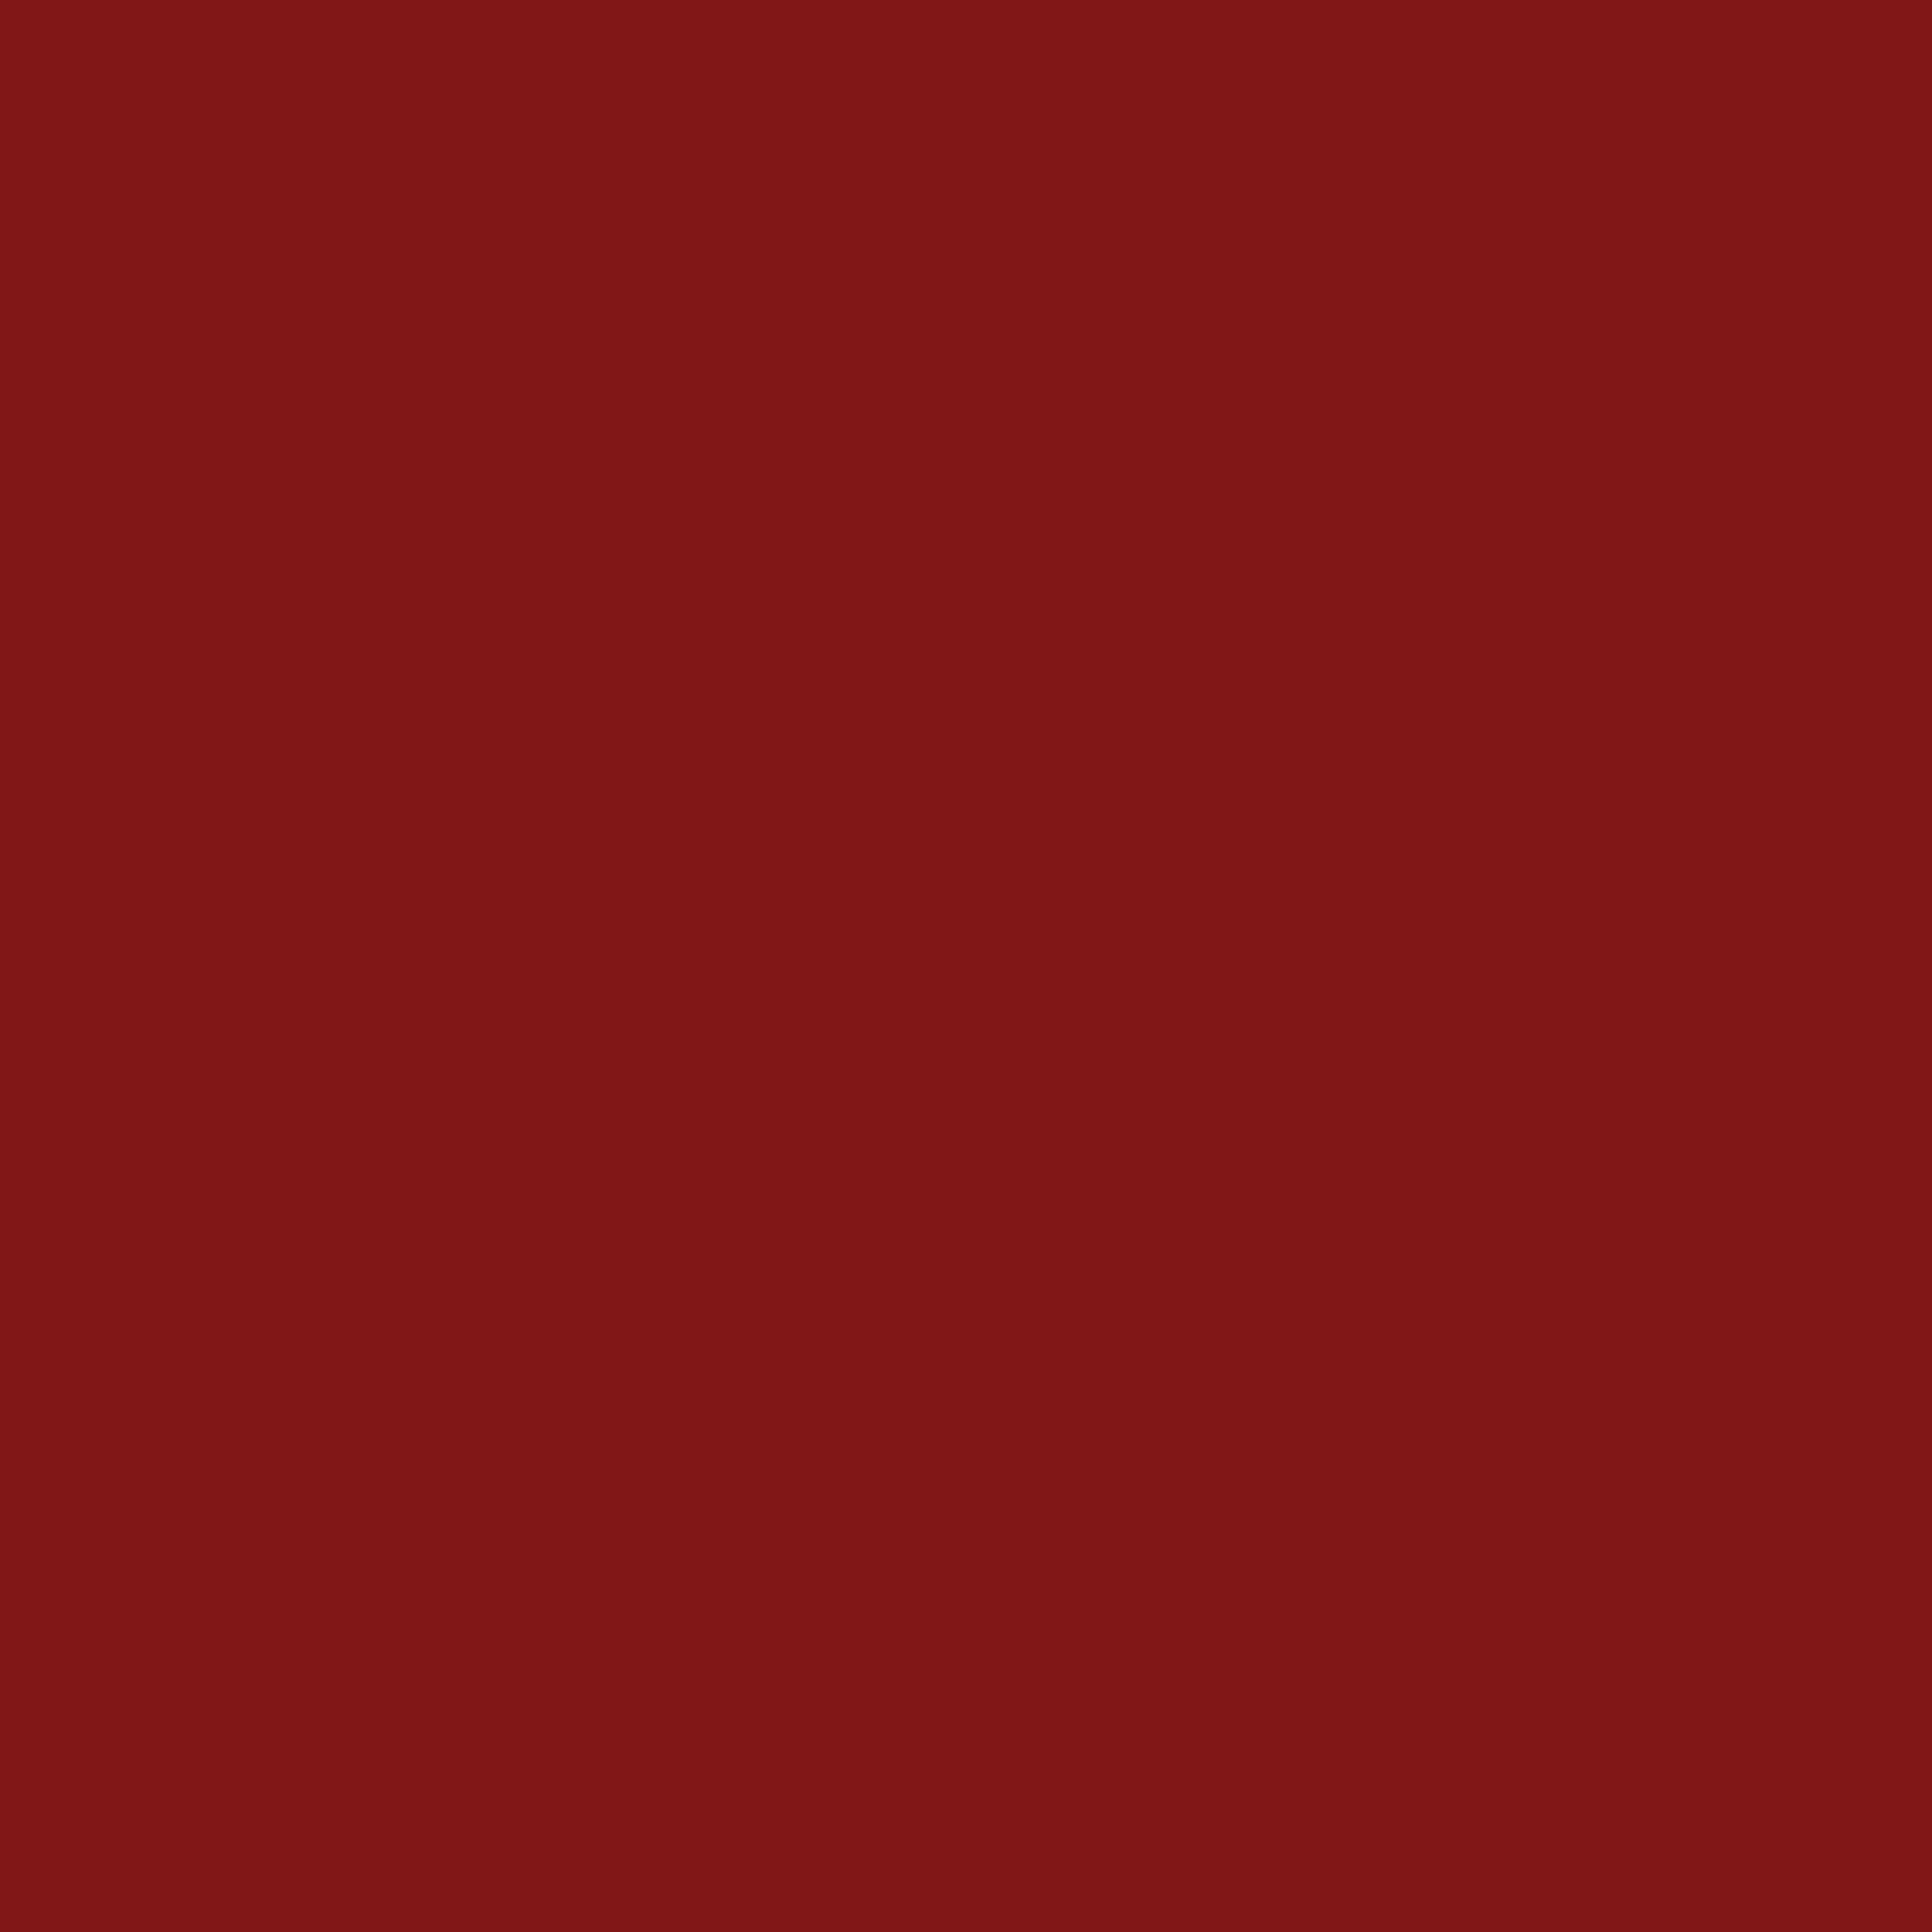 3600x3600 Falu Red Solid Color Background